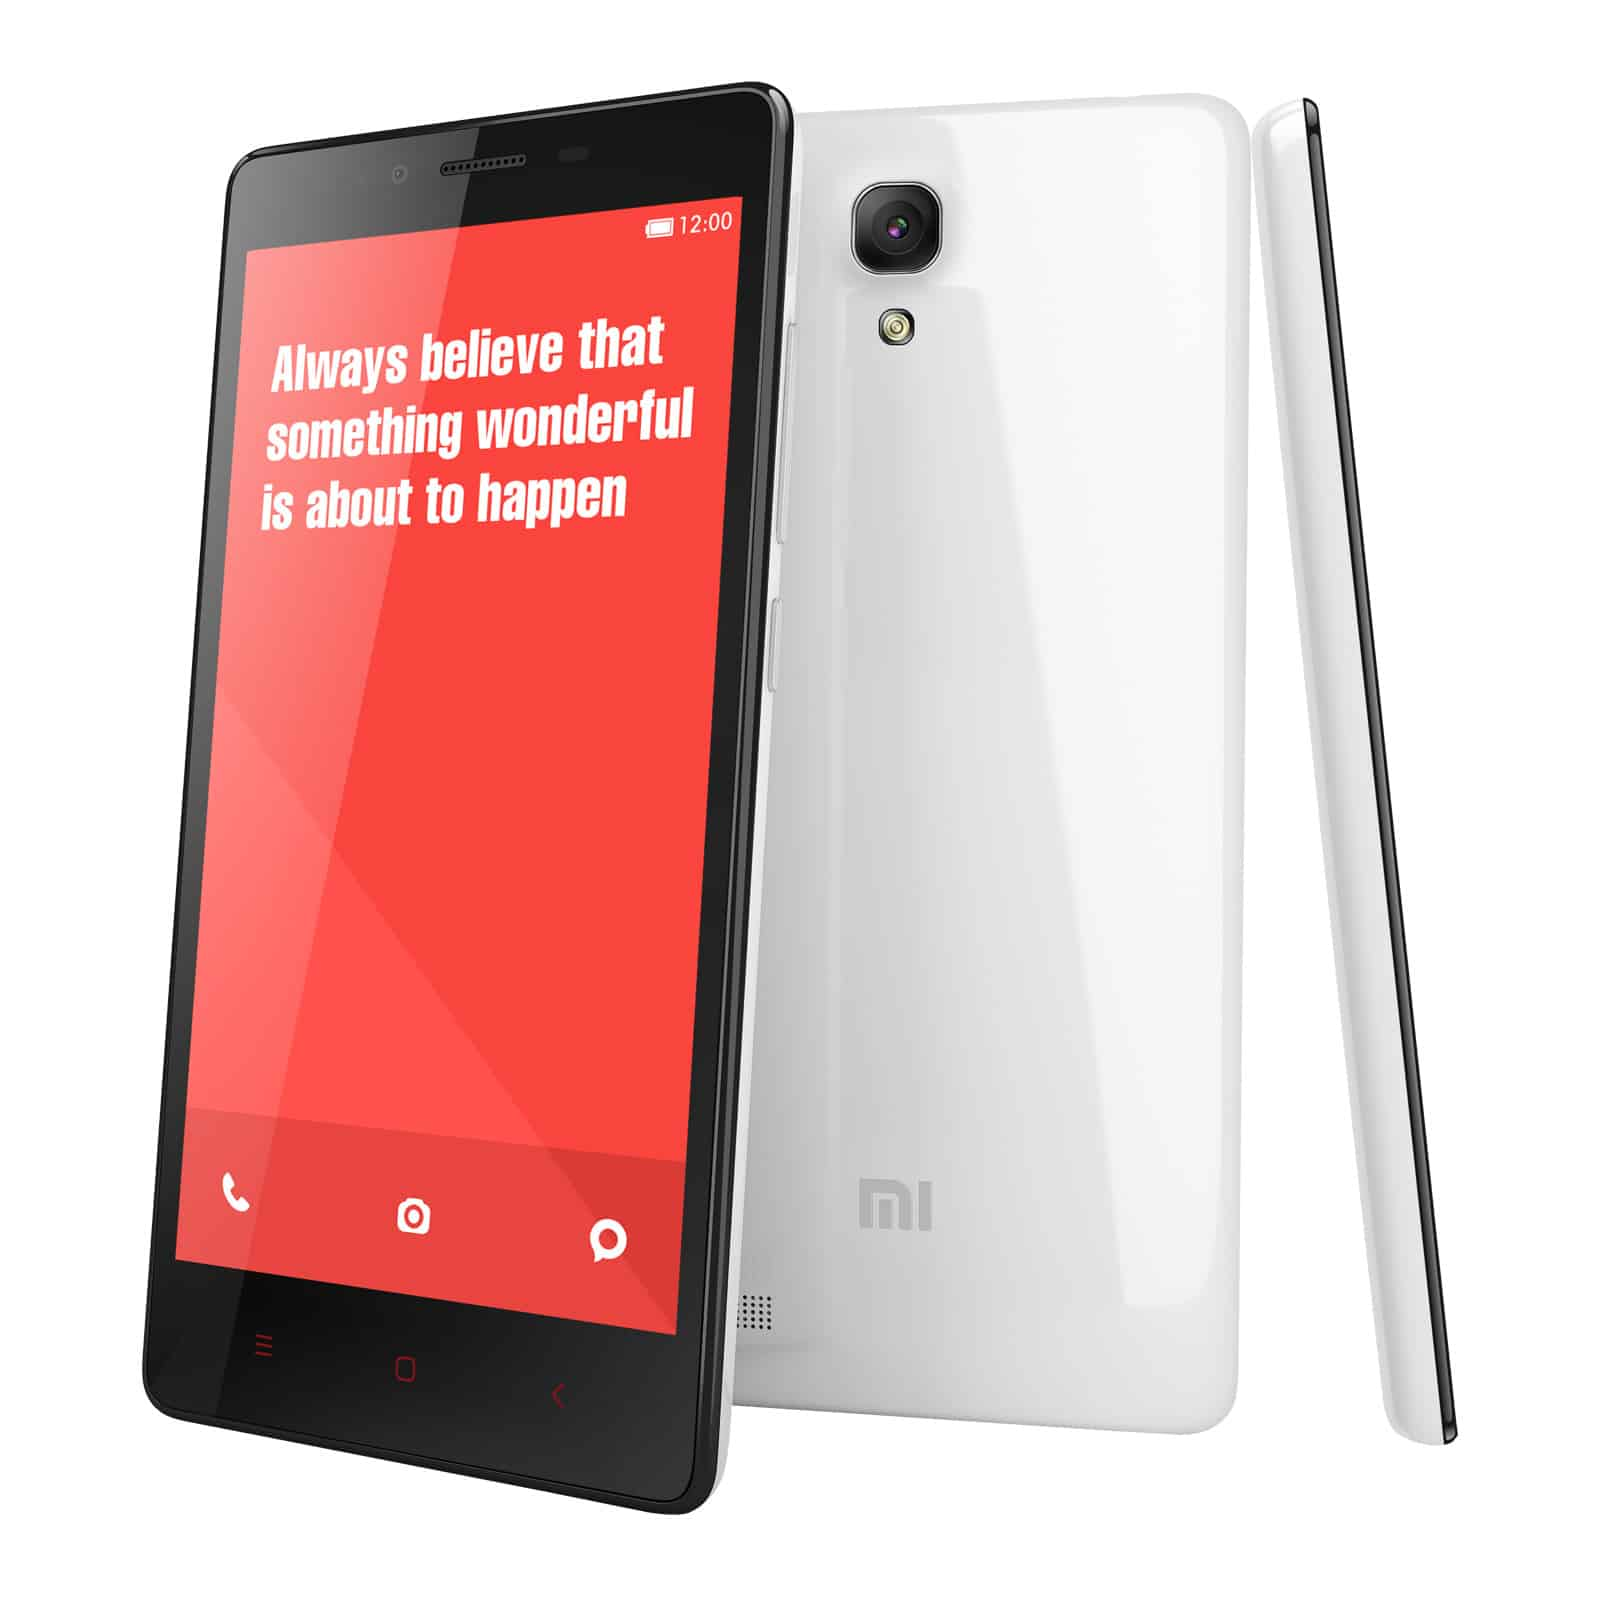 Redmi Note Rooting guide